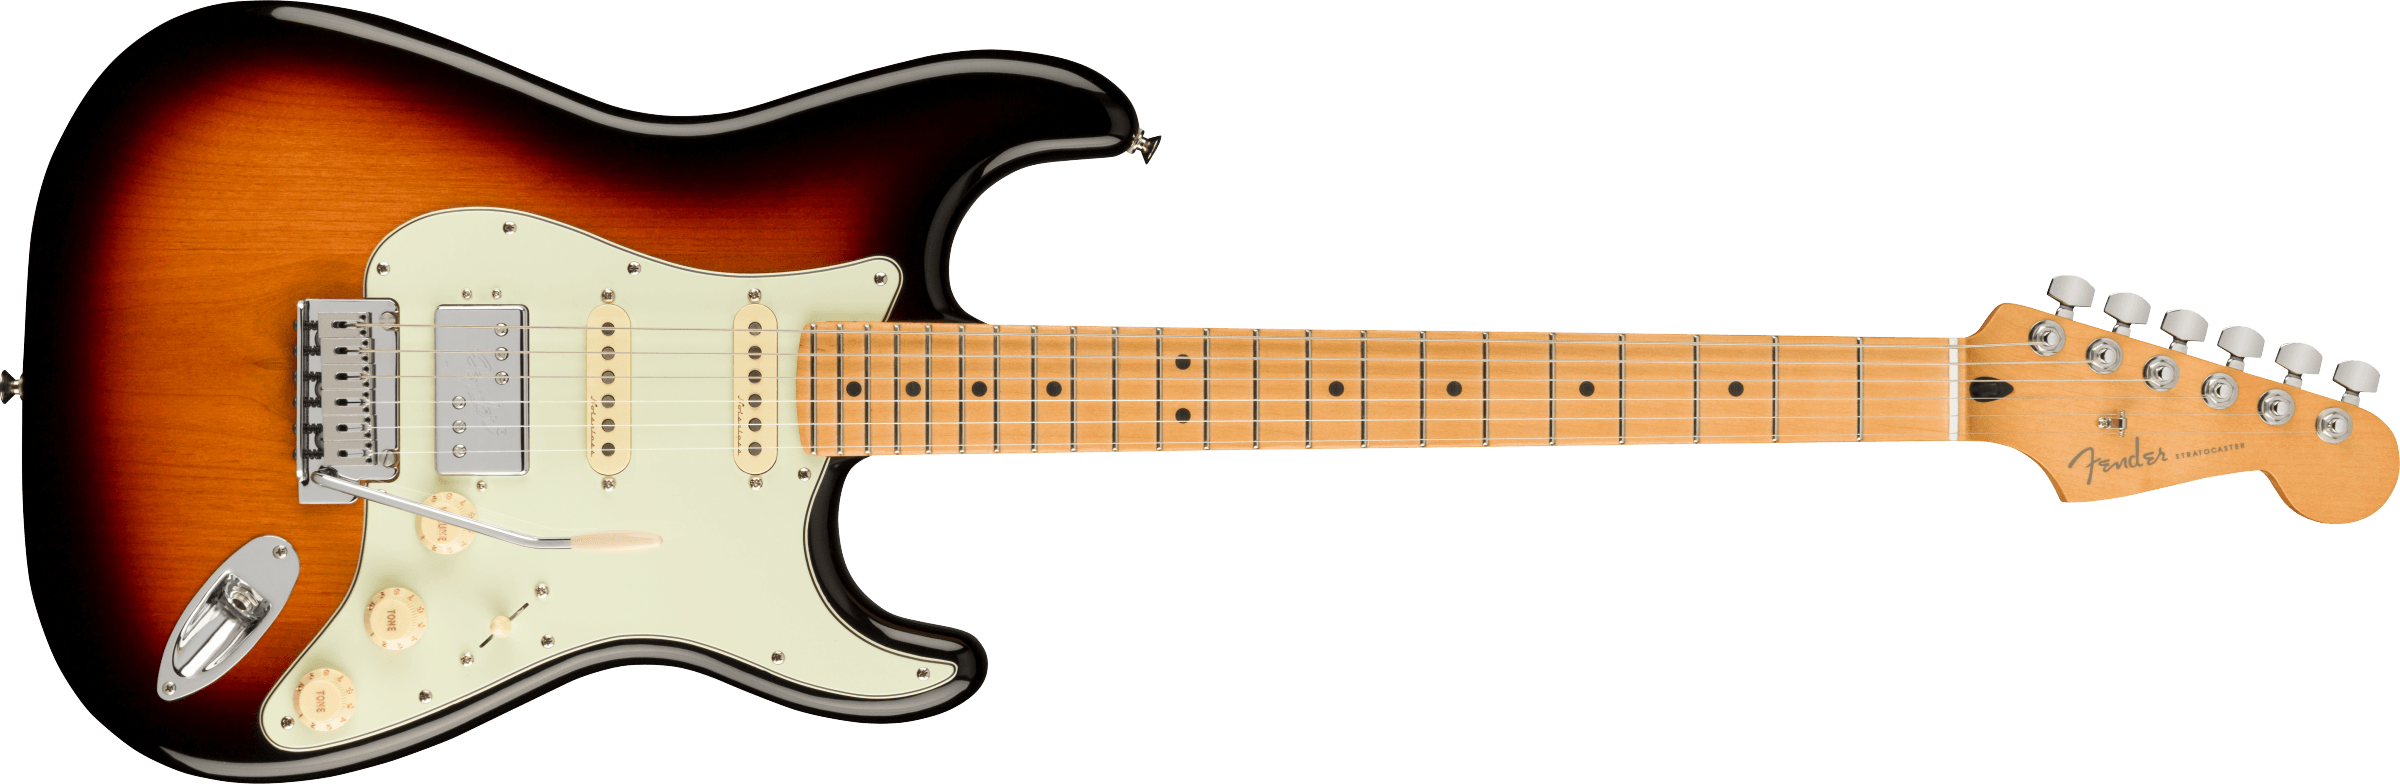 0147322300_player_plus_stratocaster_1